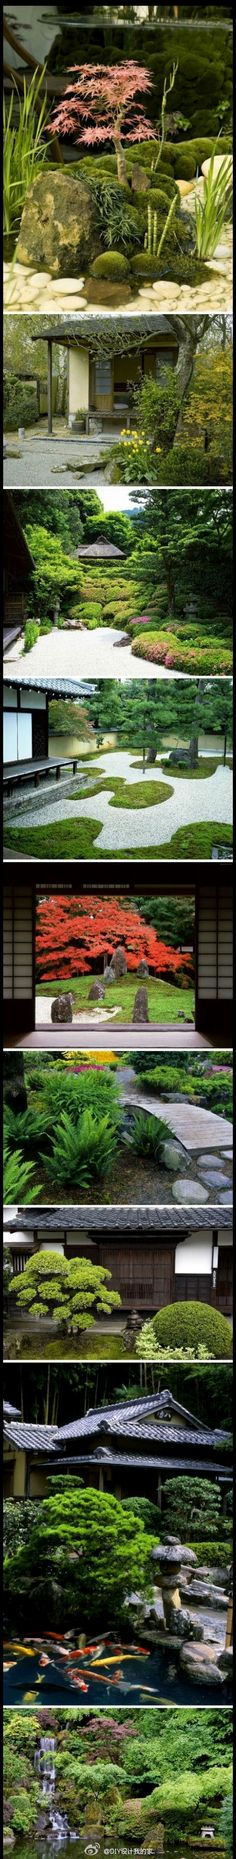 The japanese garden... complexity & simplicity at the same time #JapaneseGardens